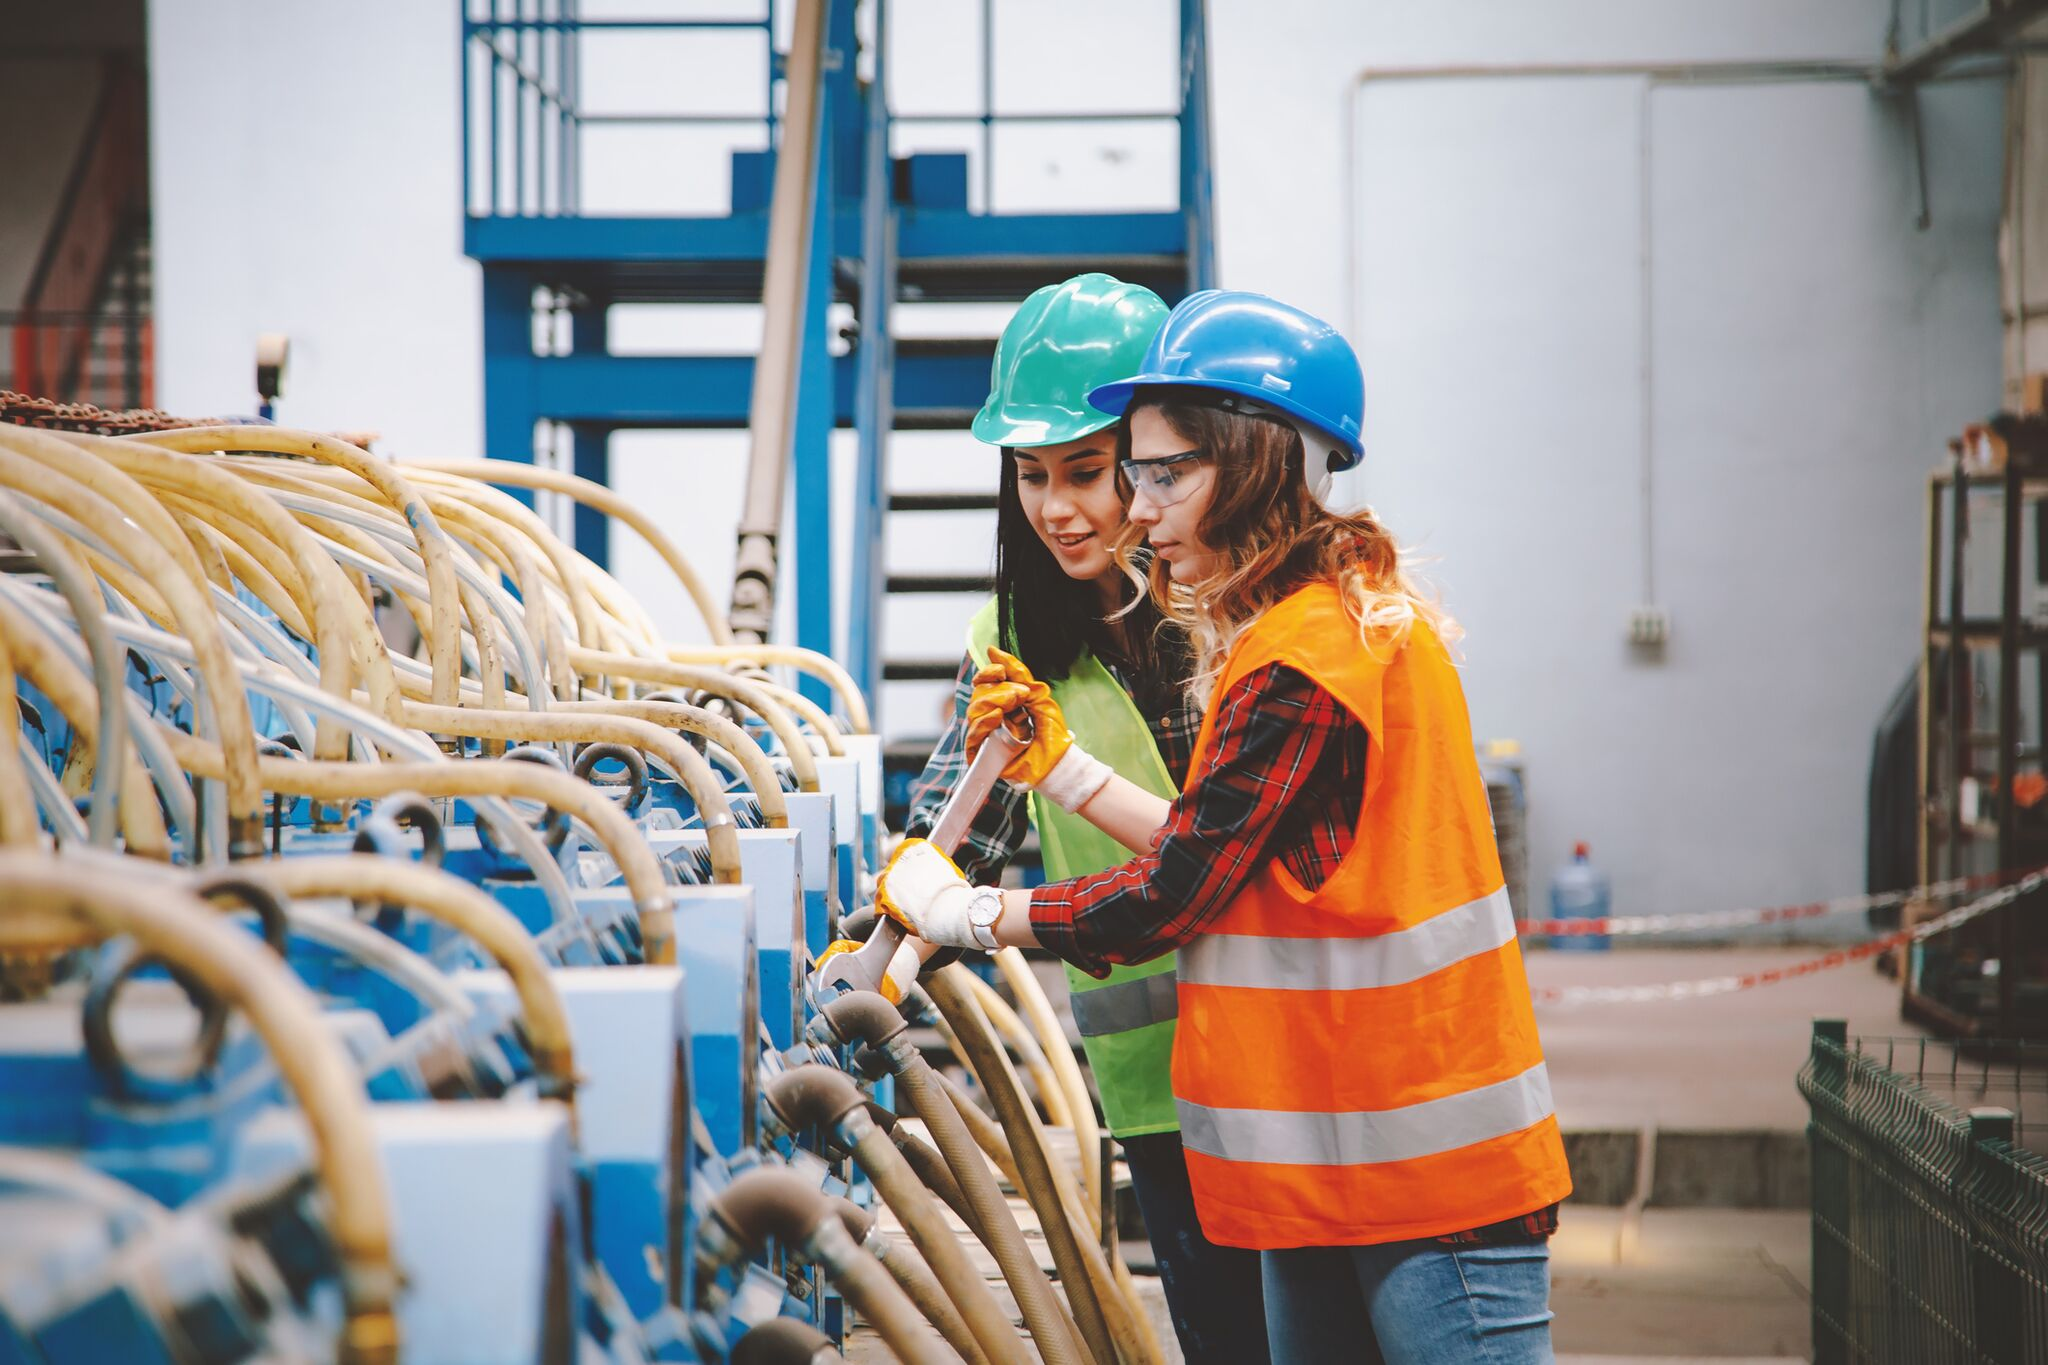 two young women wearing safety gear working on automation equipment